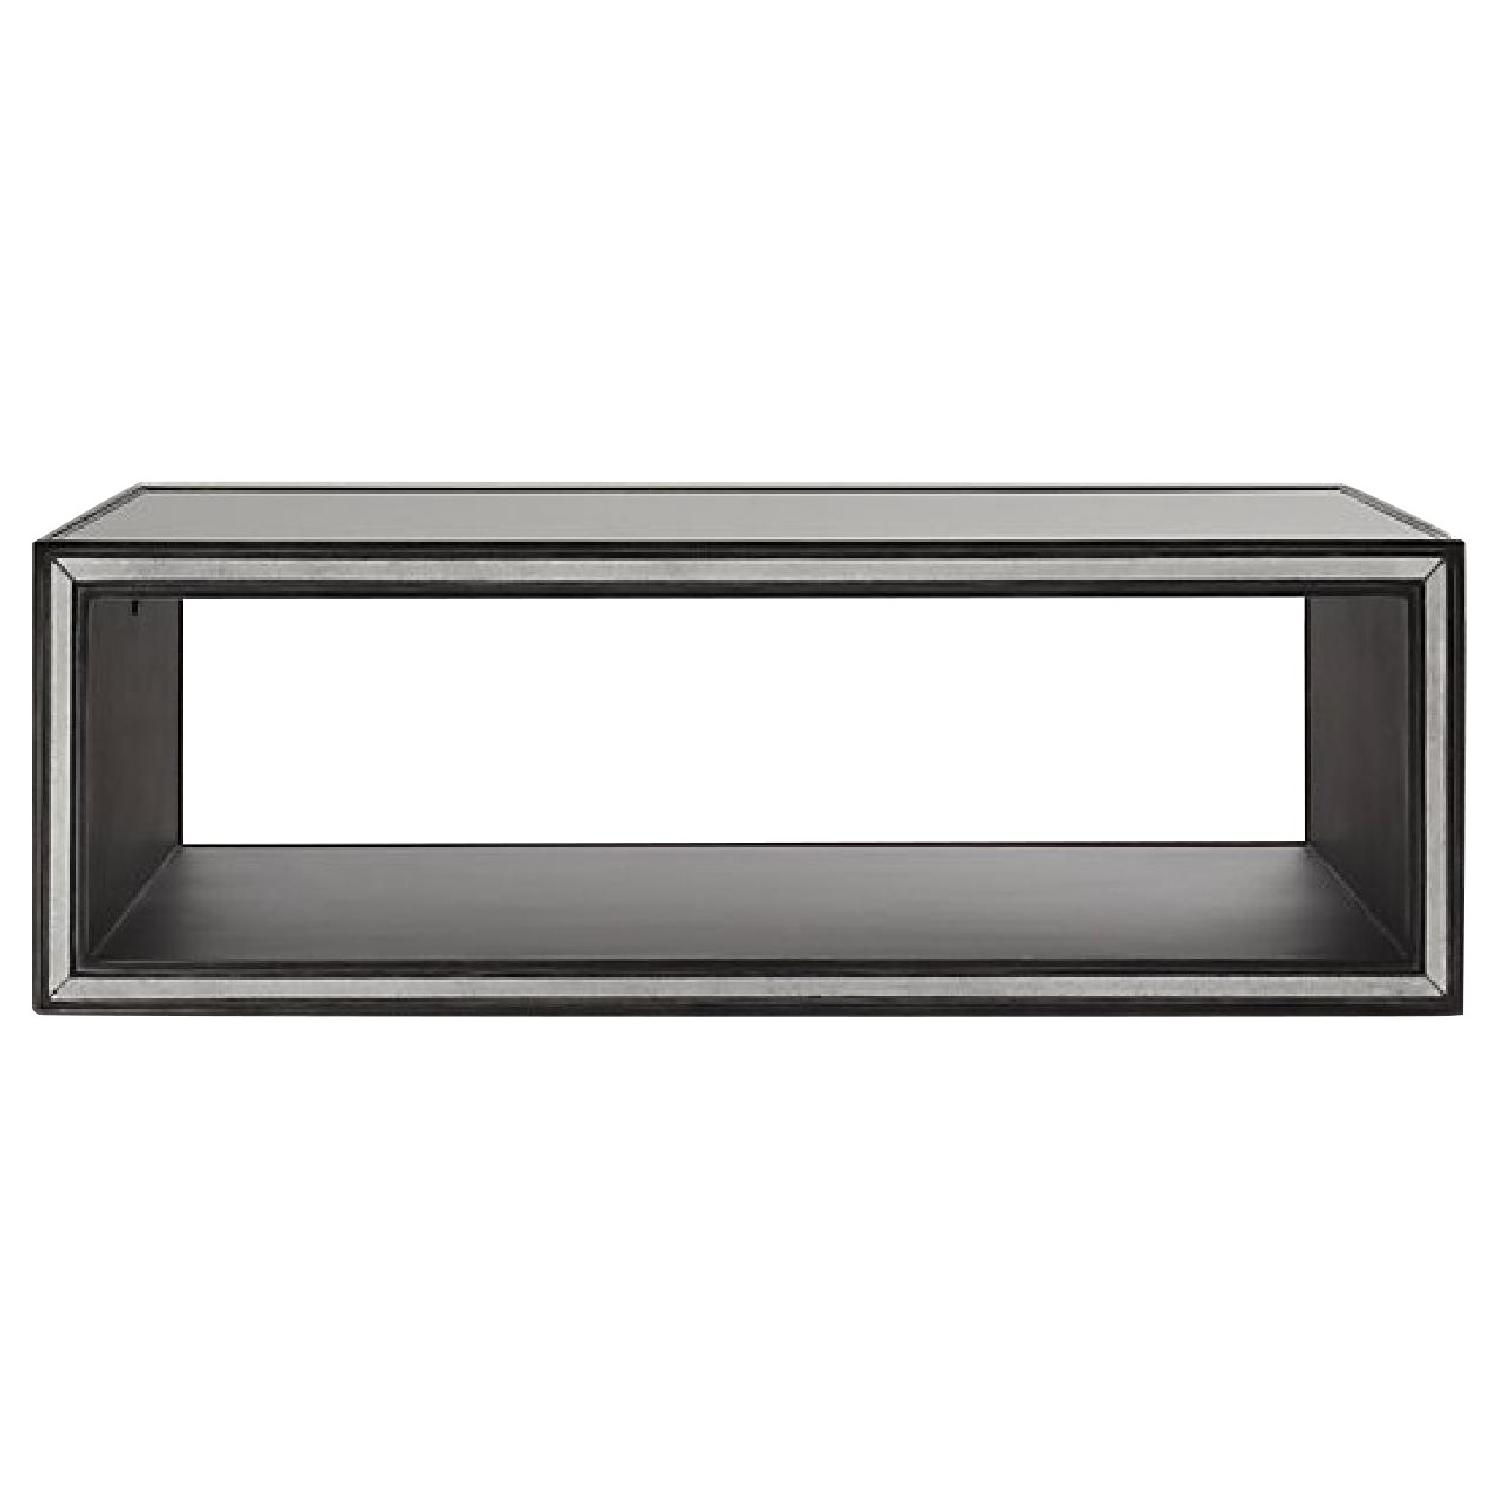 Restoration Hardware Strand Mirrored Coffee Table